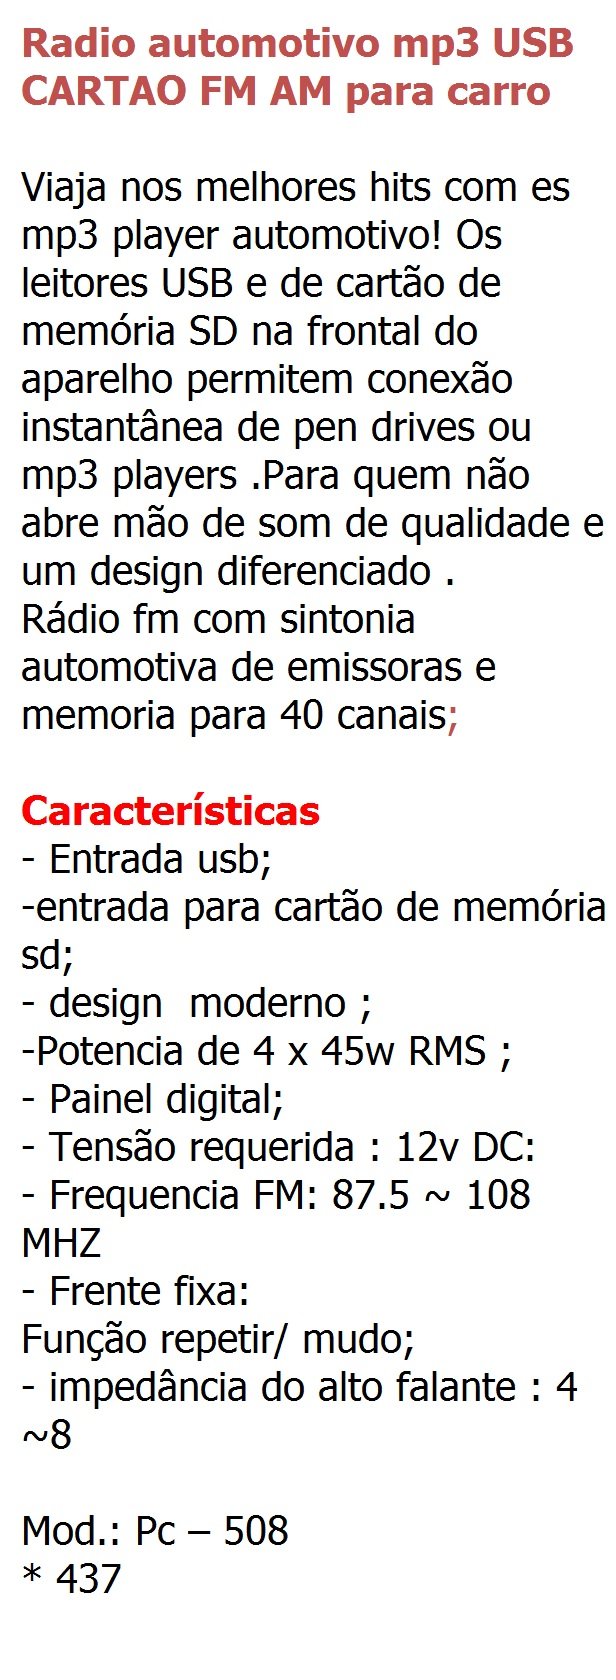 http://abmidia.dominiotemporario.com/fotos%20anuncios/mp3%20player%20automotivo/descri%C3%A7%C3%A3o%20mp3.jpg